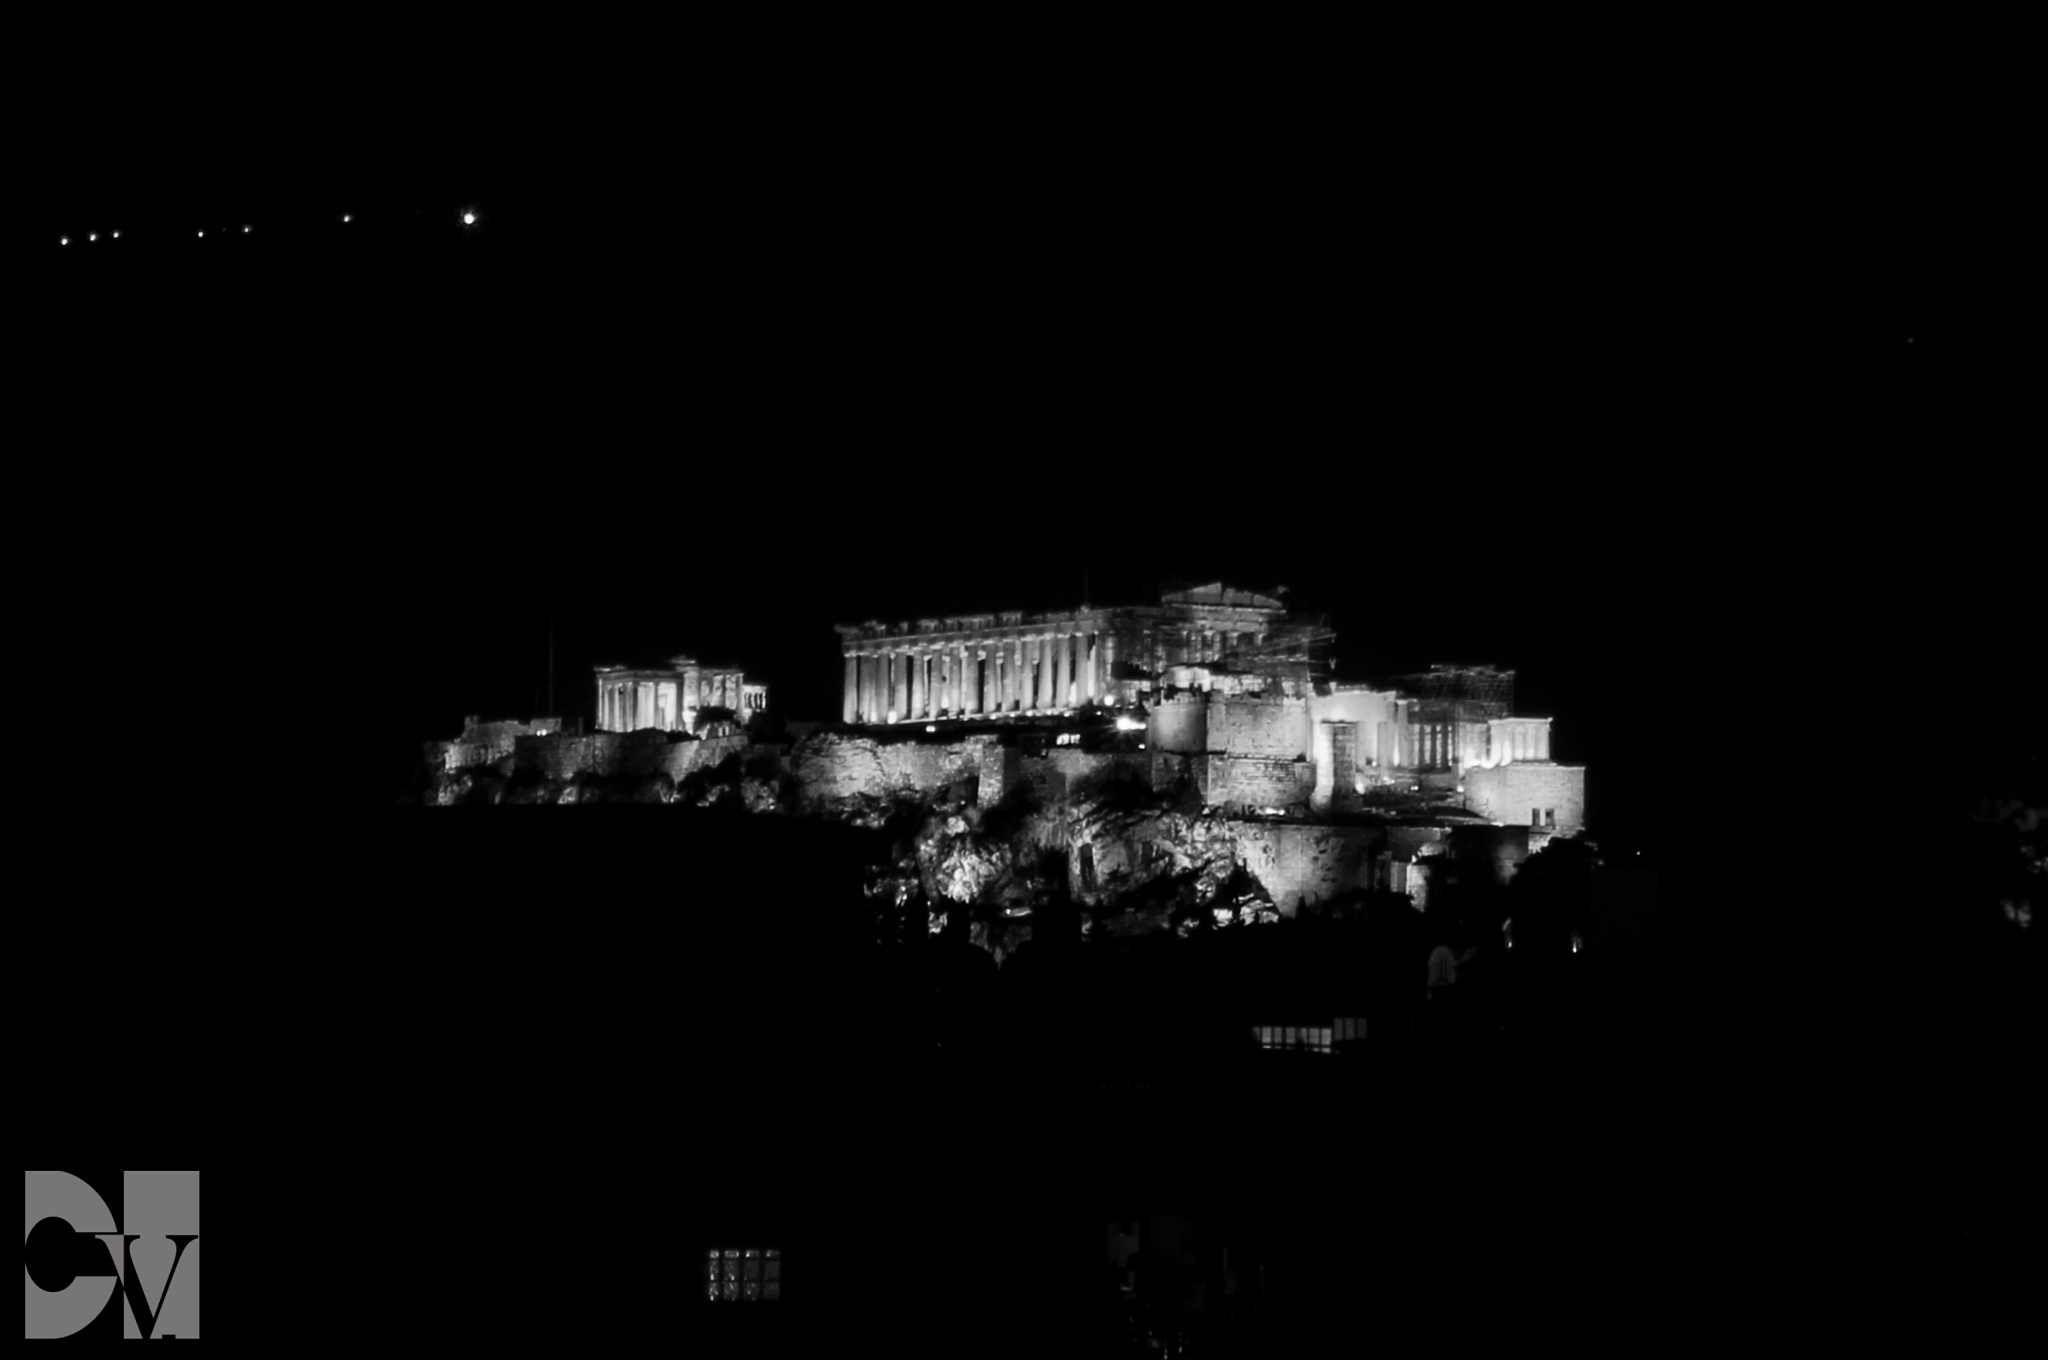 Acropolis by night by CVphotography